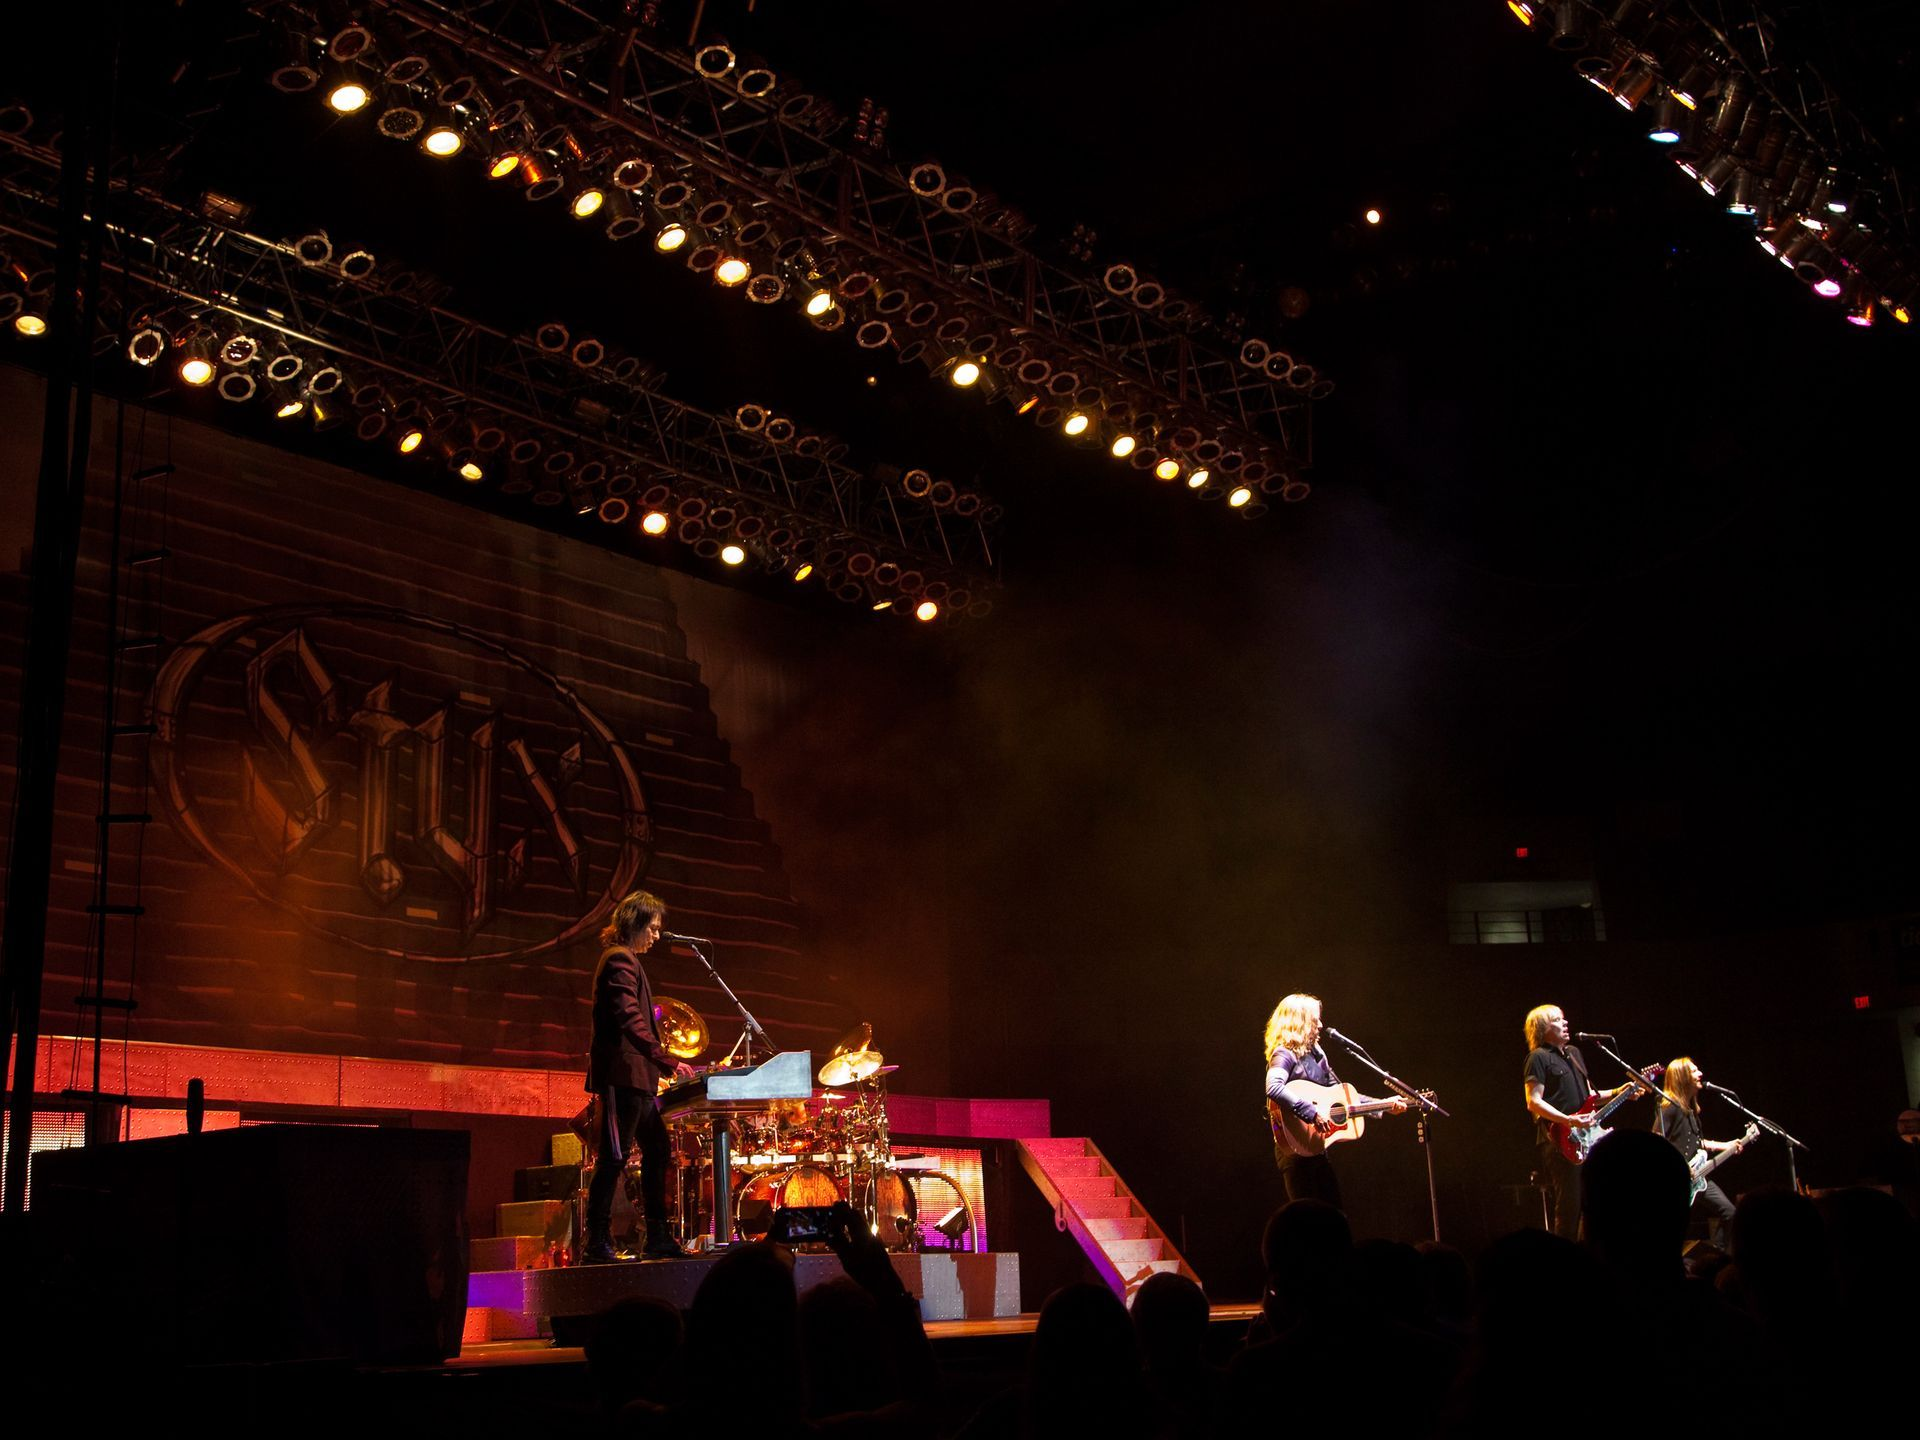 Chicago rock band, Styx, played at Freedom Hall on Aug  15, 2014